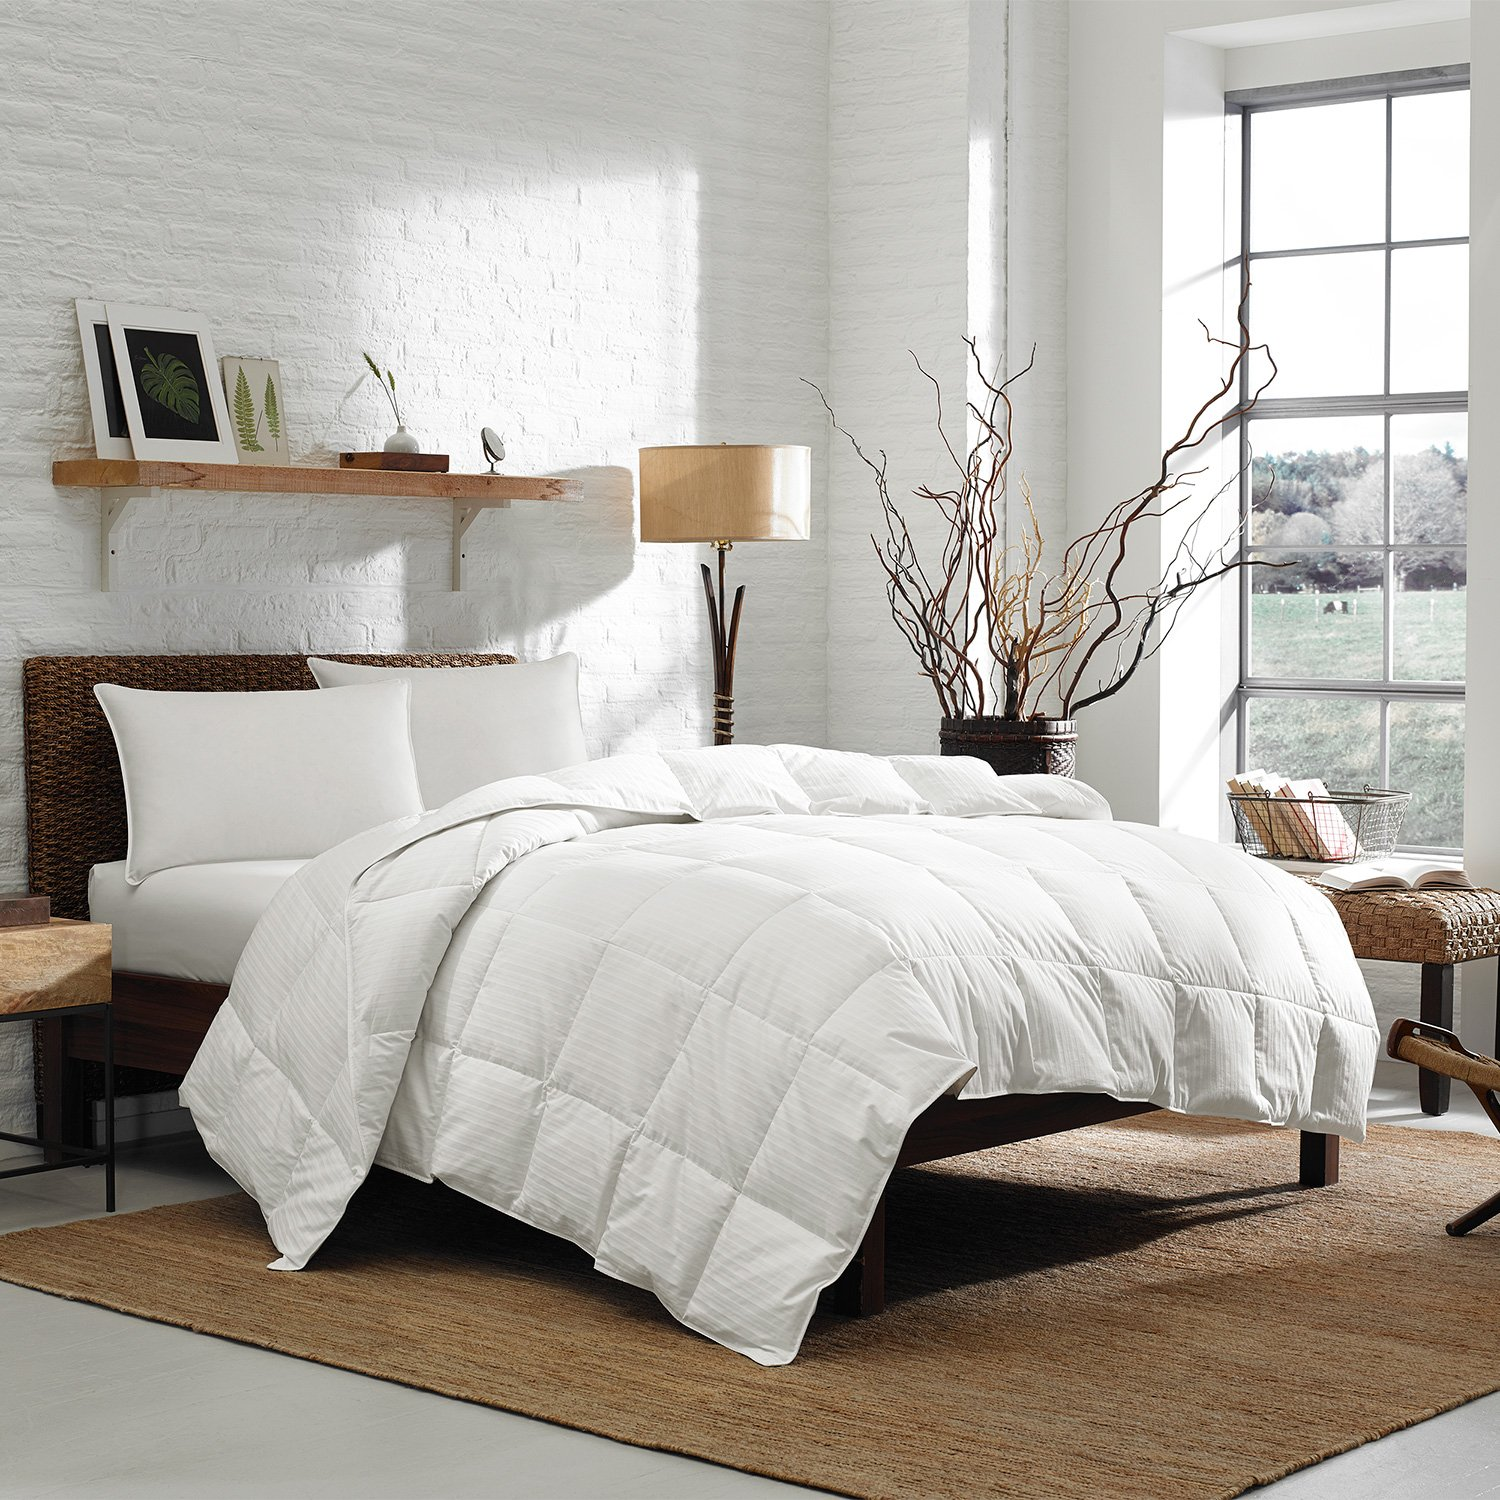 Eddie Bauer Queen 350 TC 700 Fill Power White Goose Down Comforter, Striped Damask Cotton